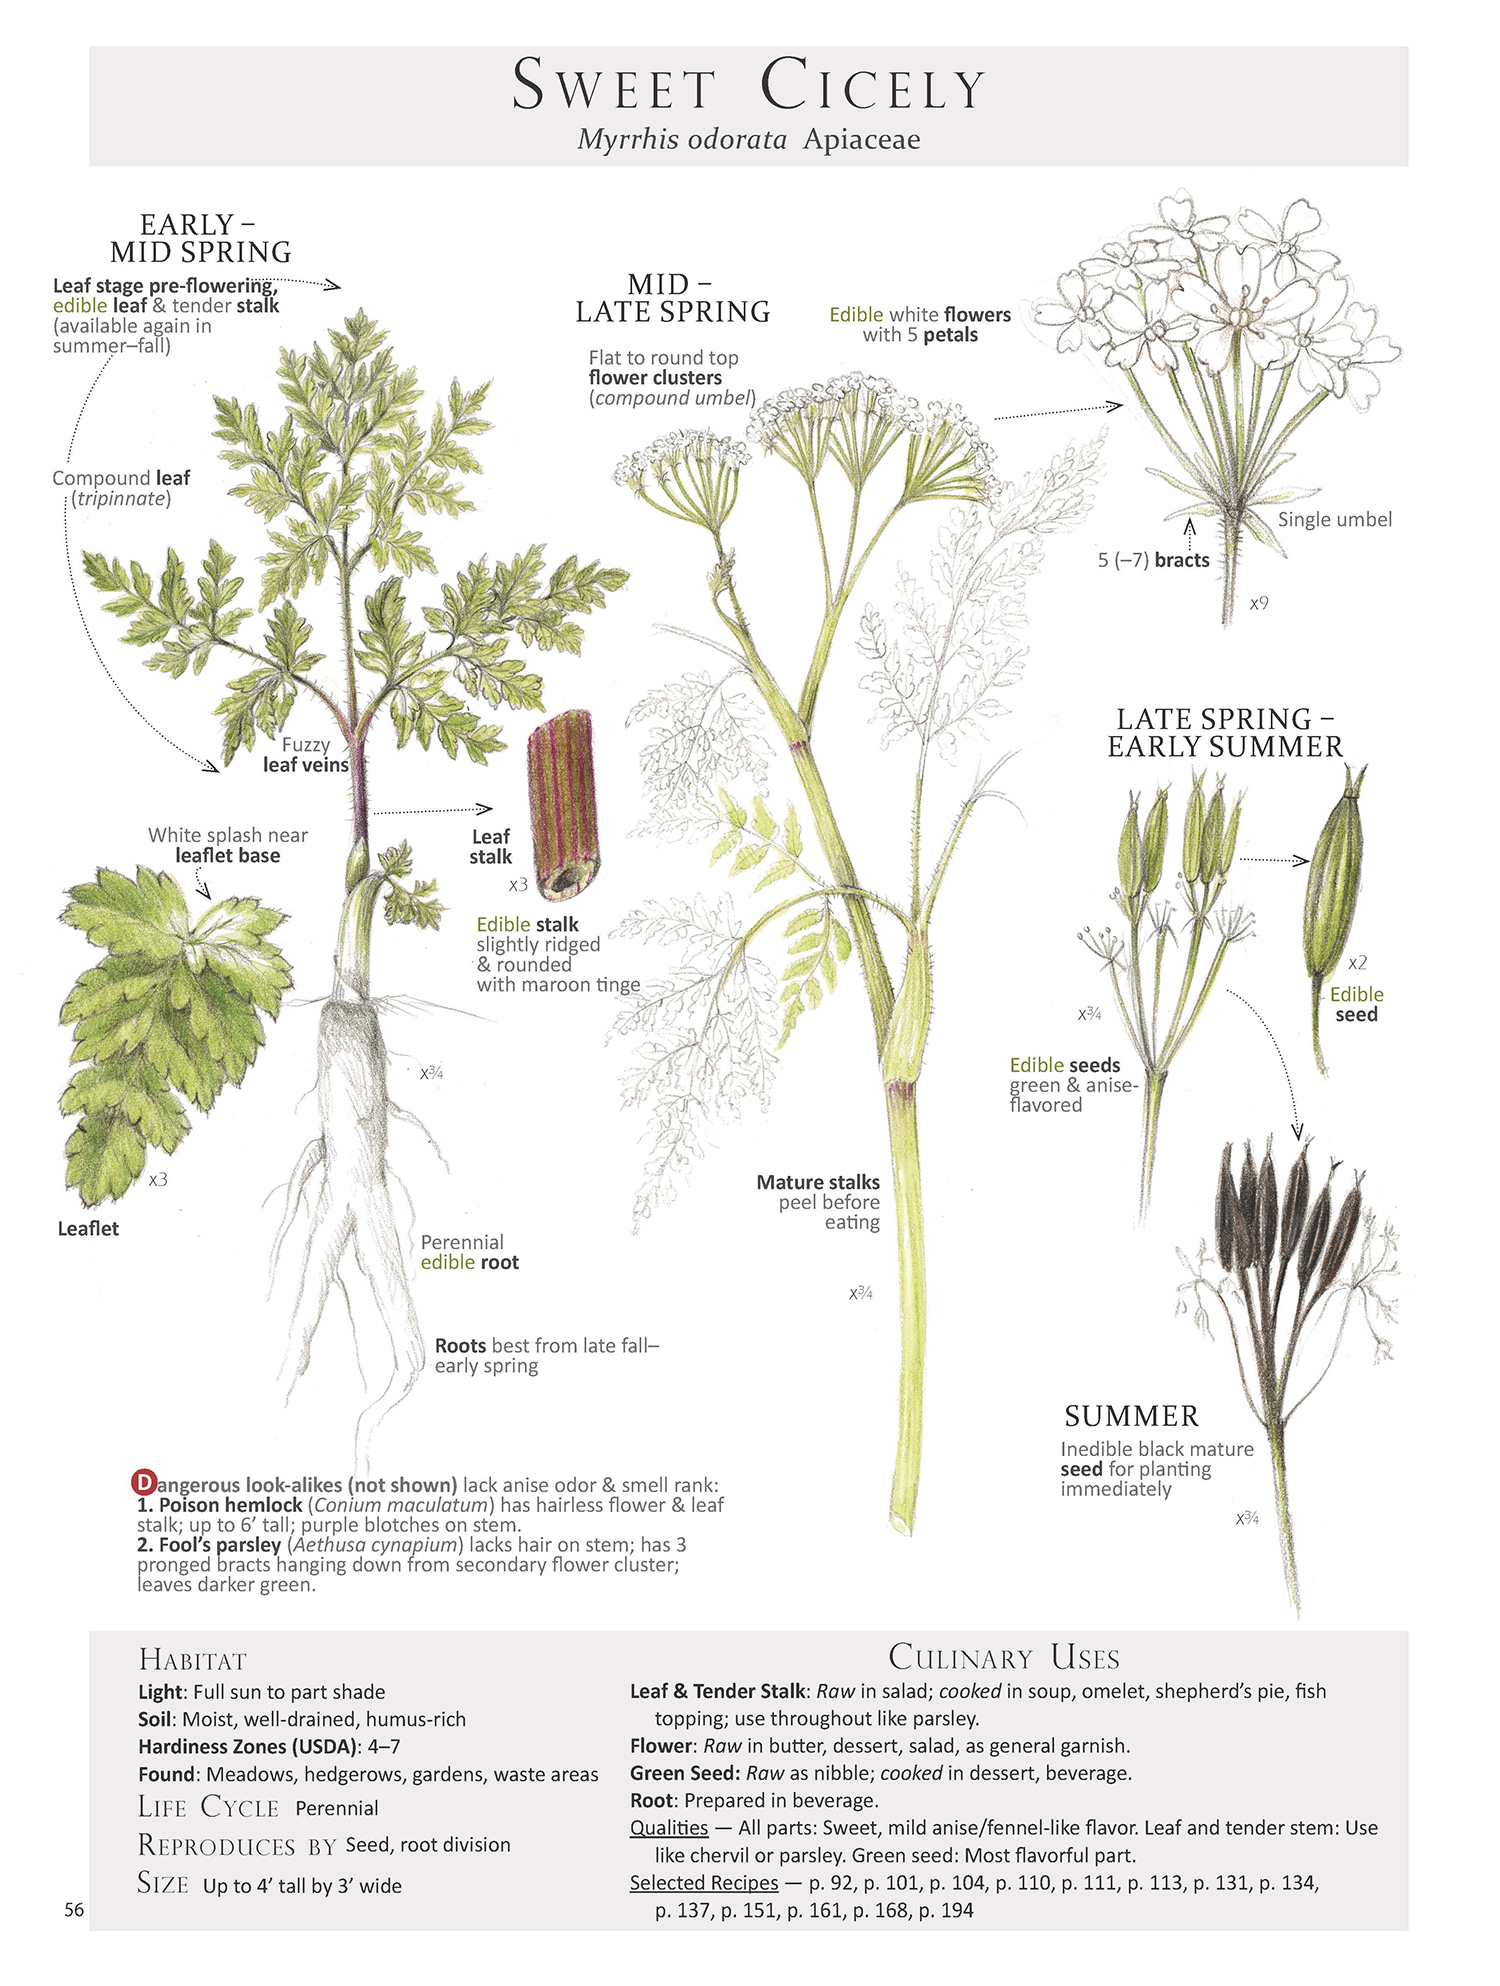 Sweet Cicely Plant Map from Foraging & Feasting: A Field Guide and Wild Food Cookbook by Dina Falconi; illustrated by Wendy Hollender  http://bit.ly/1Auh44Q